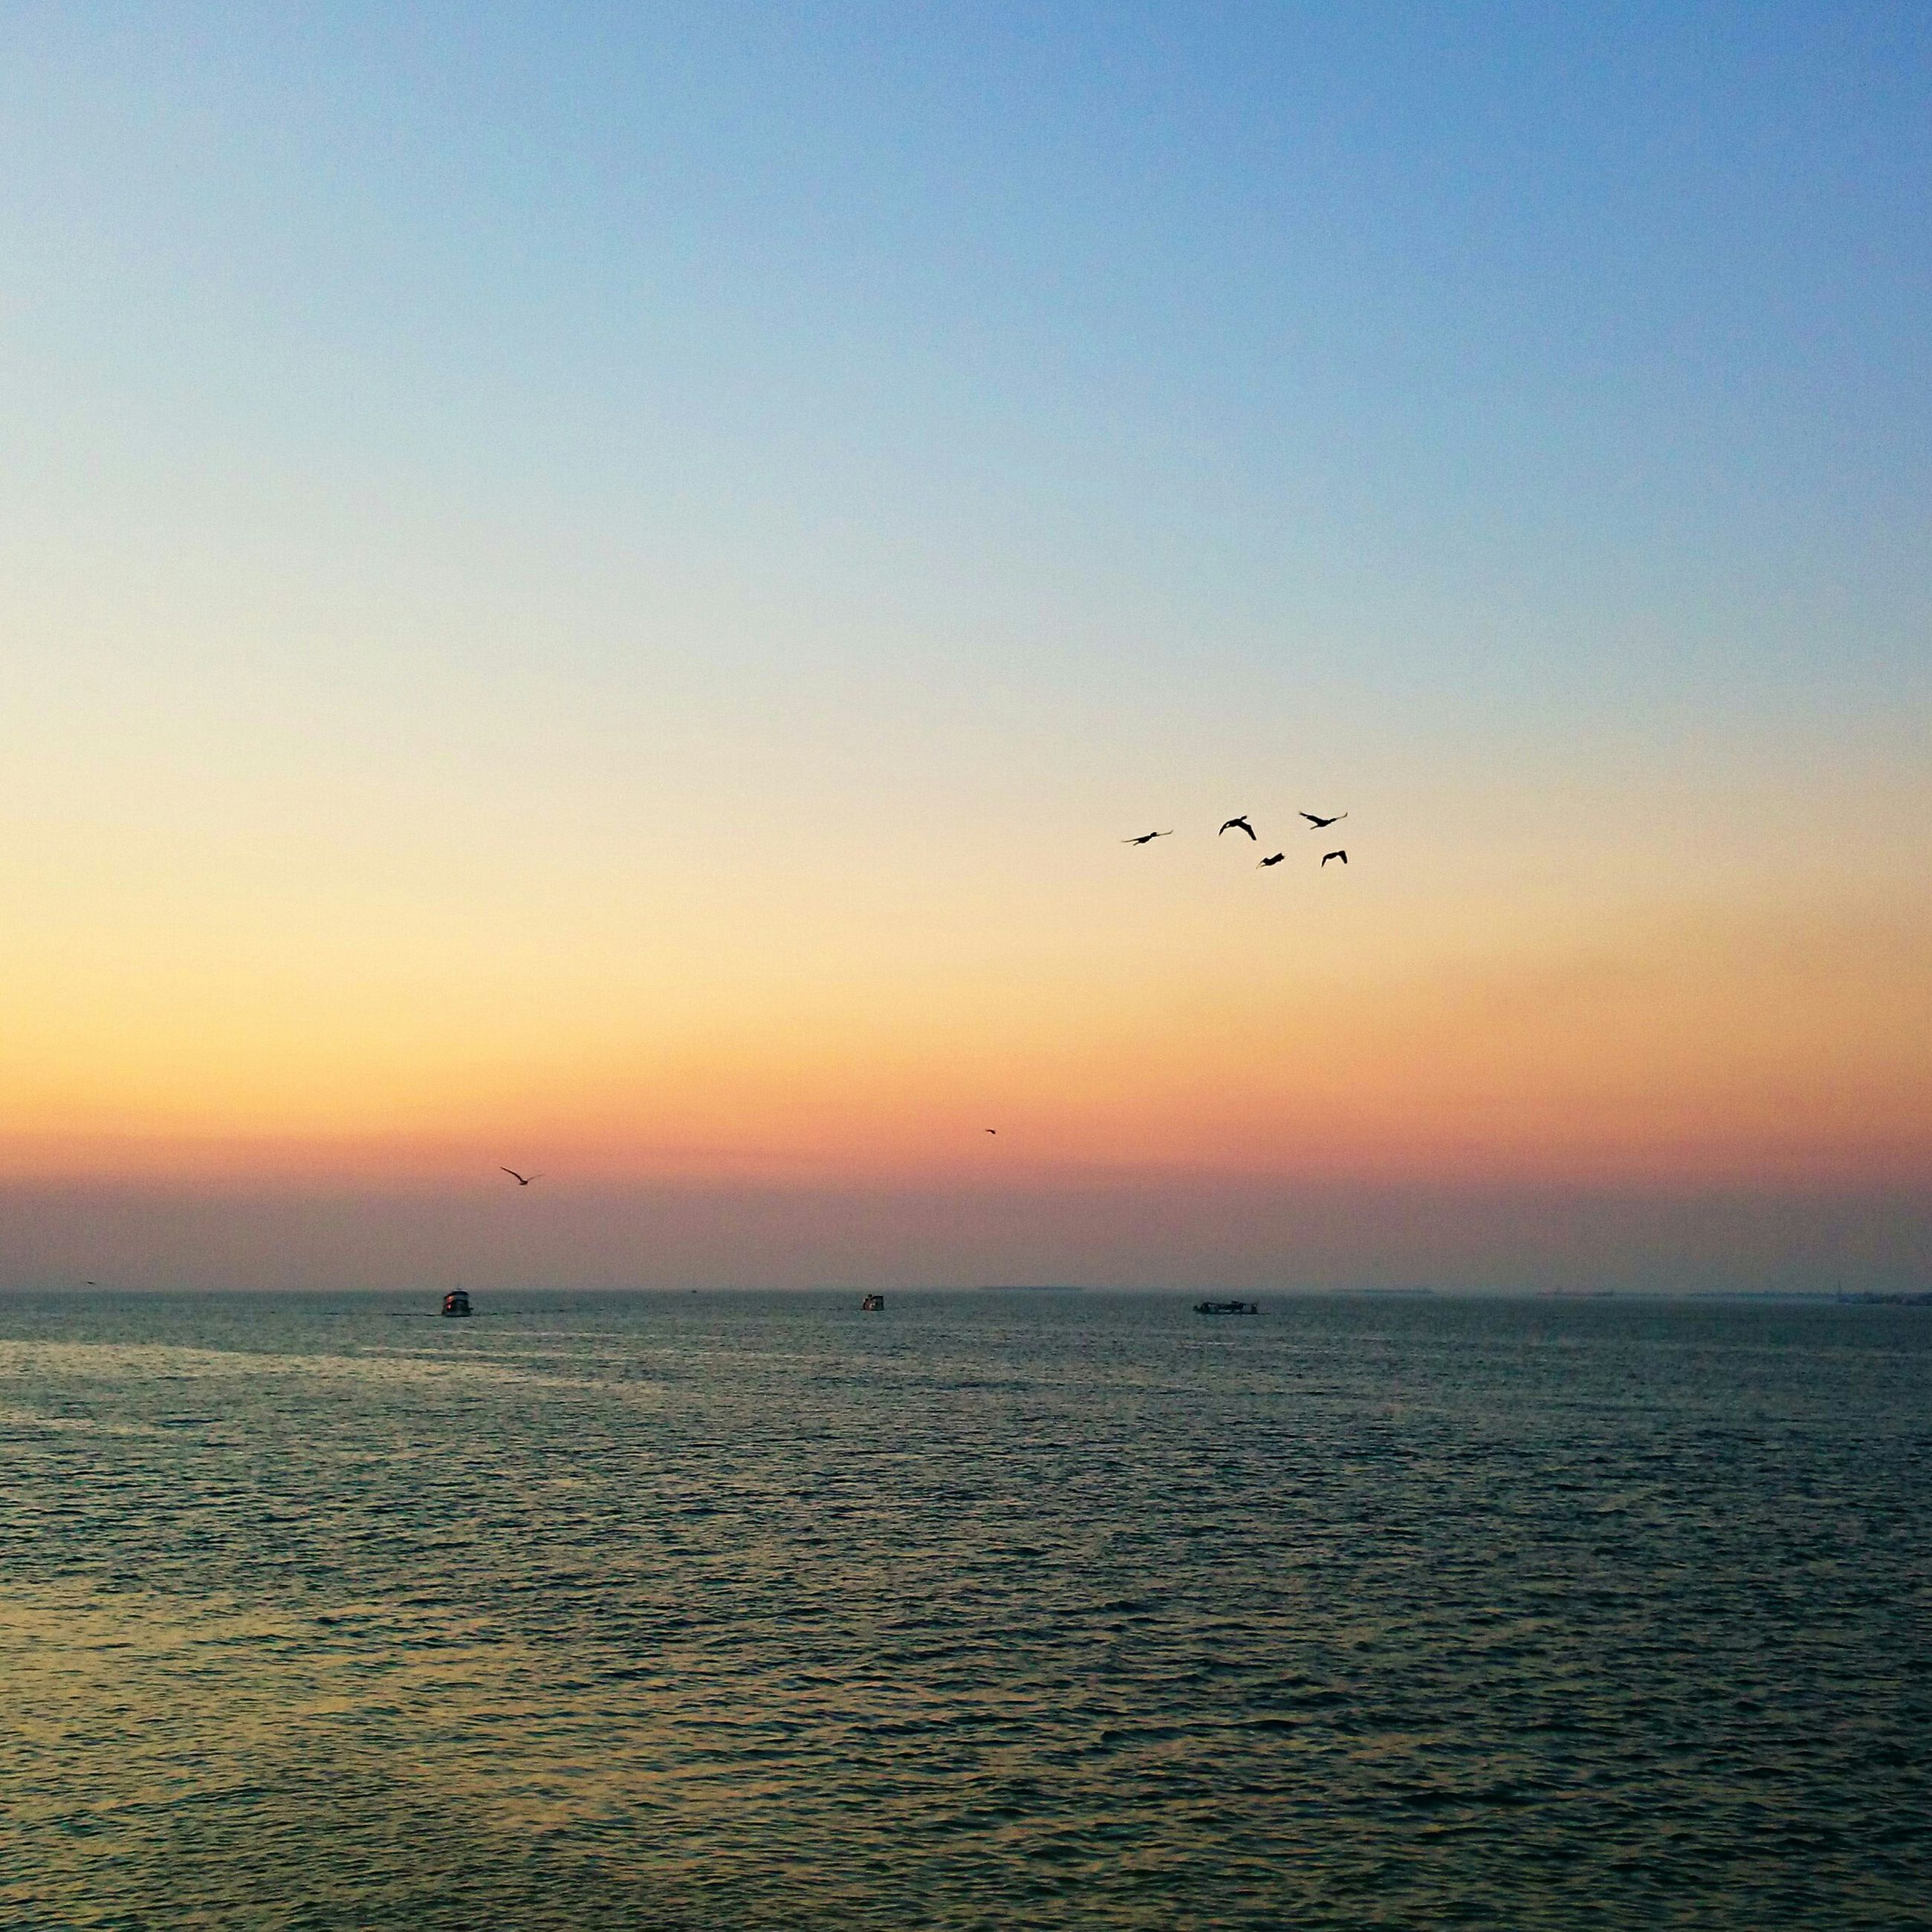 bird, flying, animal themes, sunset, animals in the wild, sea, water, wildlife, horizon over water, scenics, tranquil scene, beauty in nature, silhouette, waterfront, tranquility, nature, orange color, idyllic, flock of birds